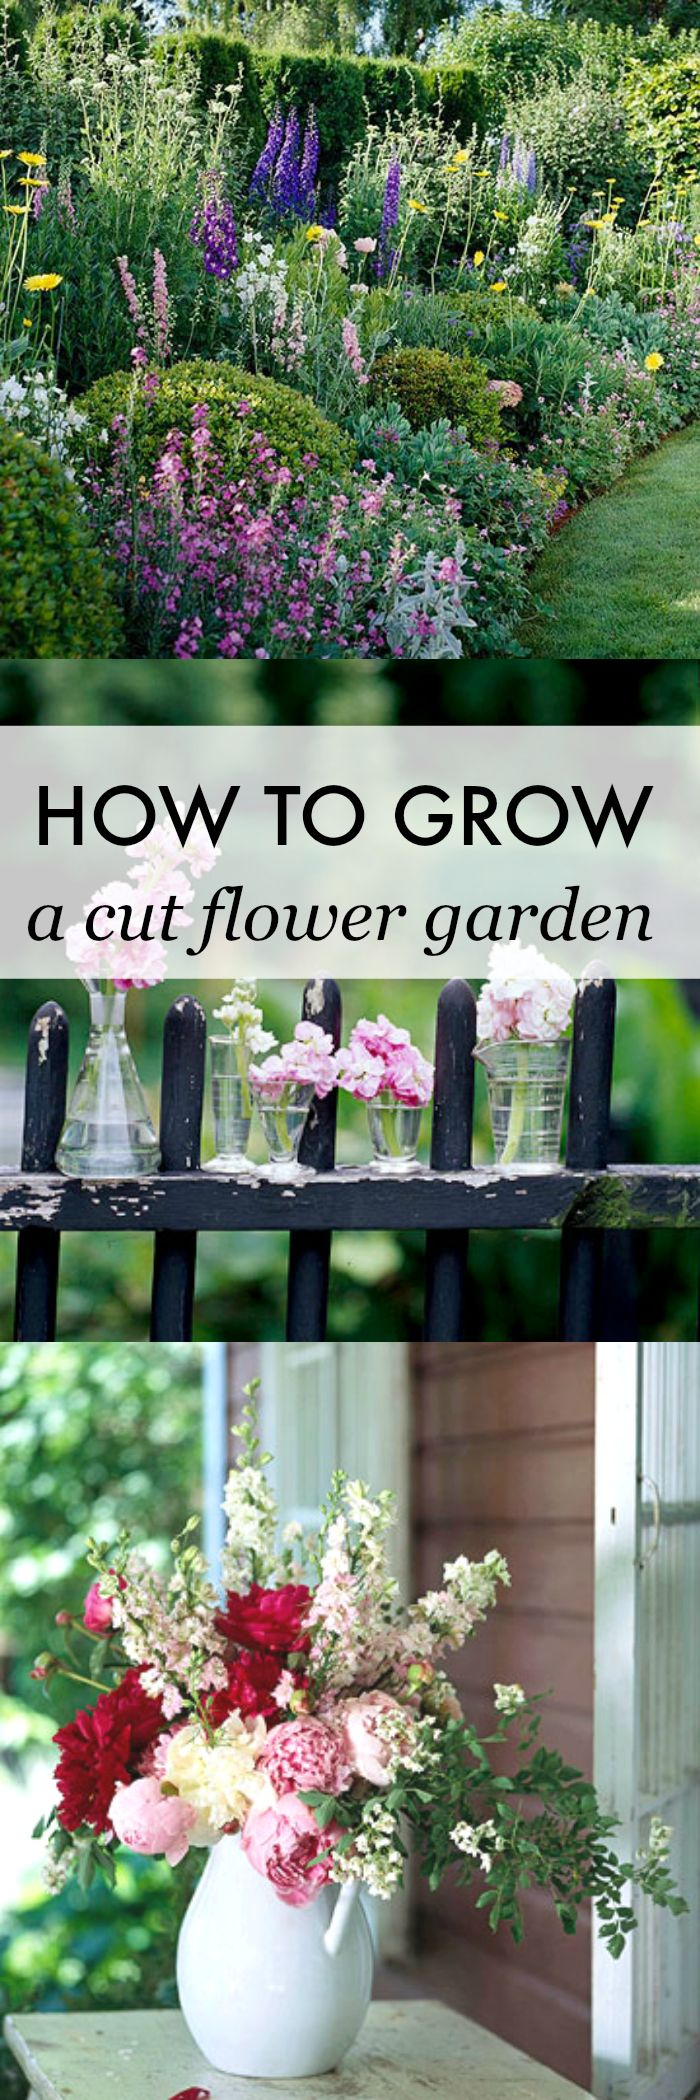 Flower garden design ideas - How To Grow A Cut Flower Garden